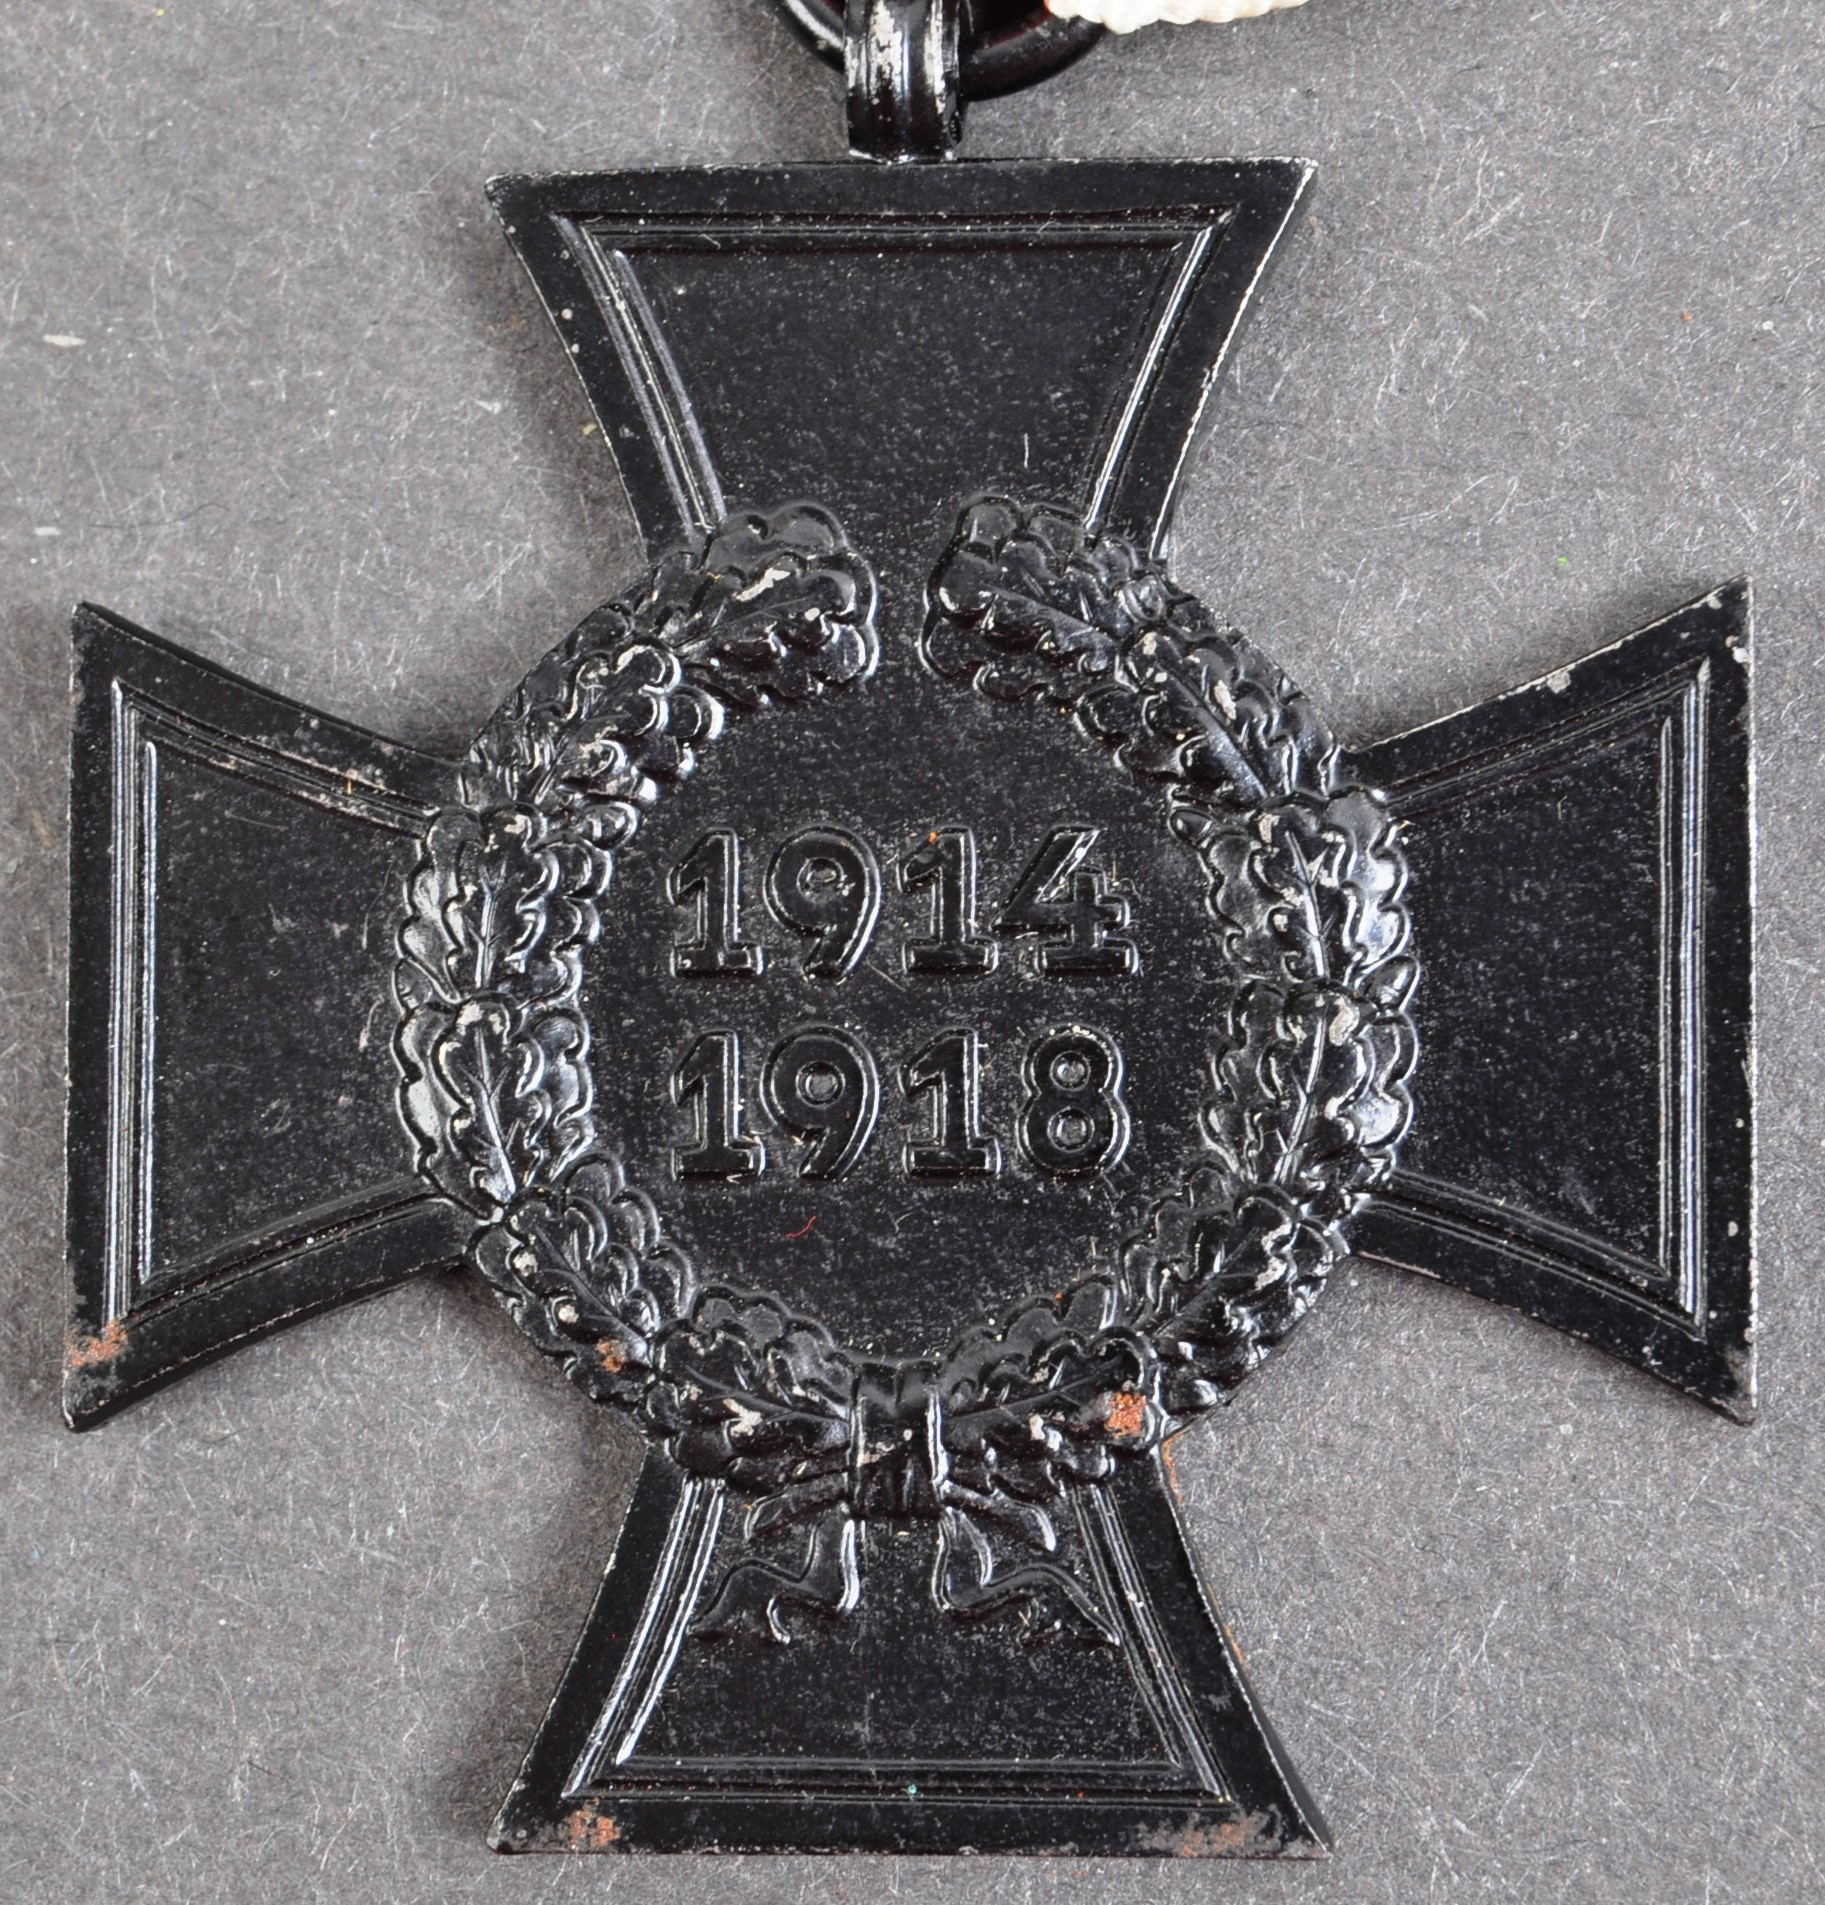 ORIGINAL WWI FIRST WORLD WAR BLACK HONOUR CROSS MEDAL & PAPERS - Image 5 of 5